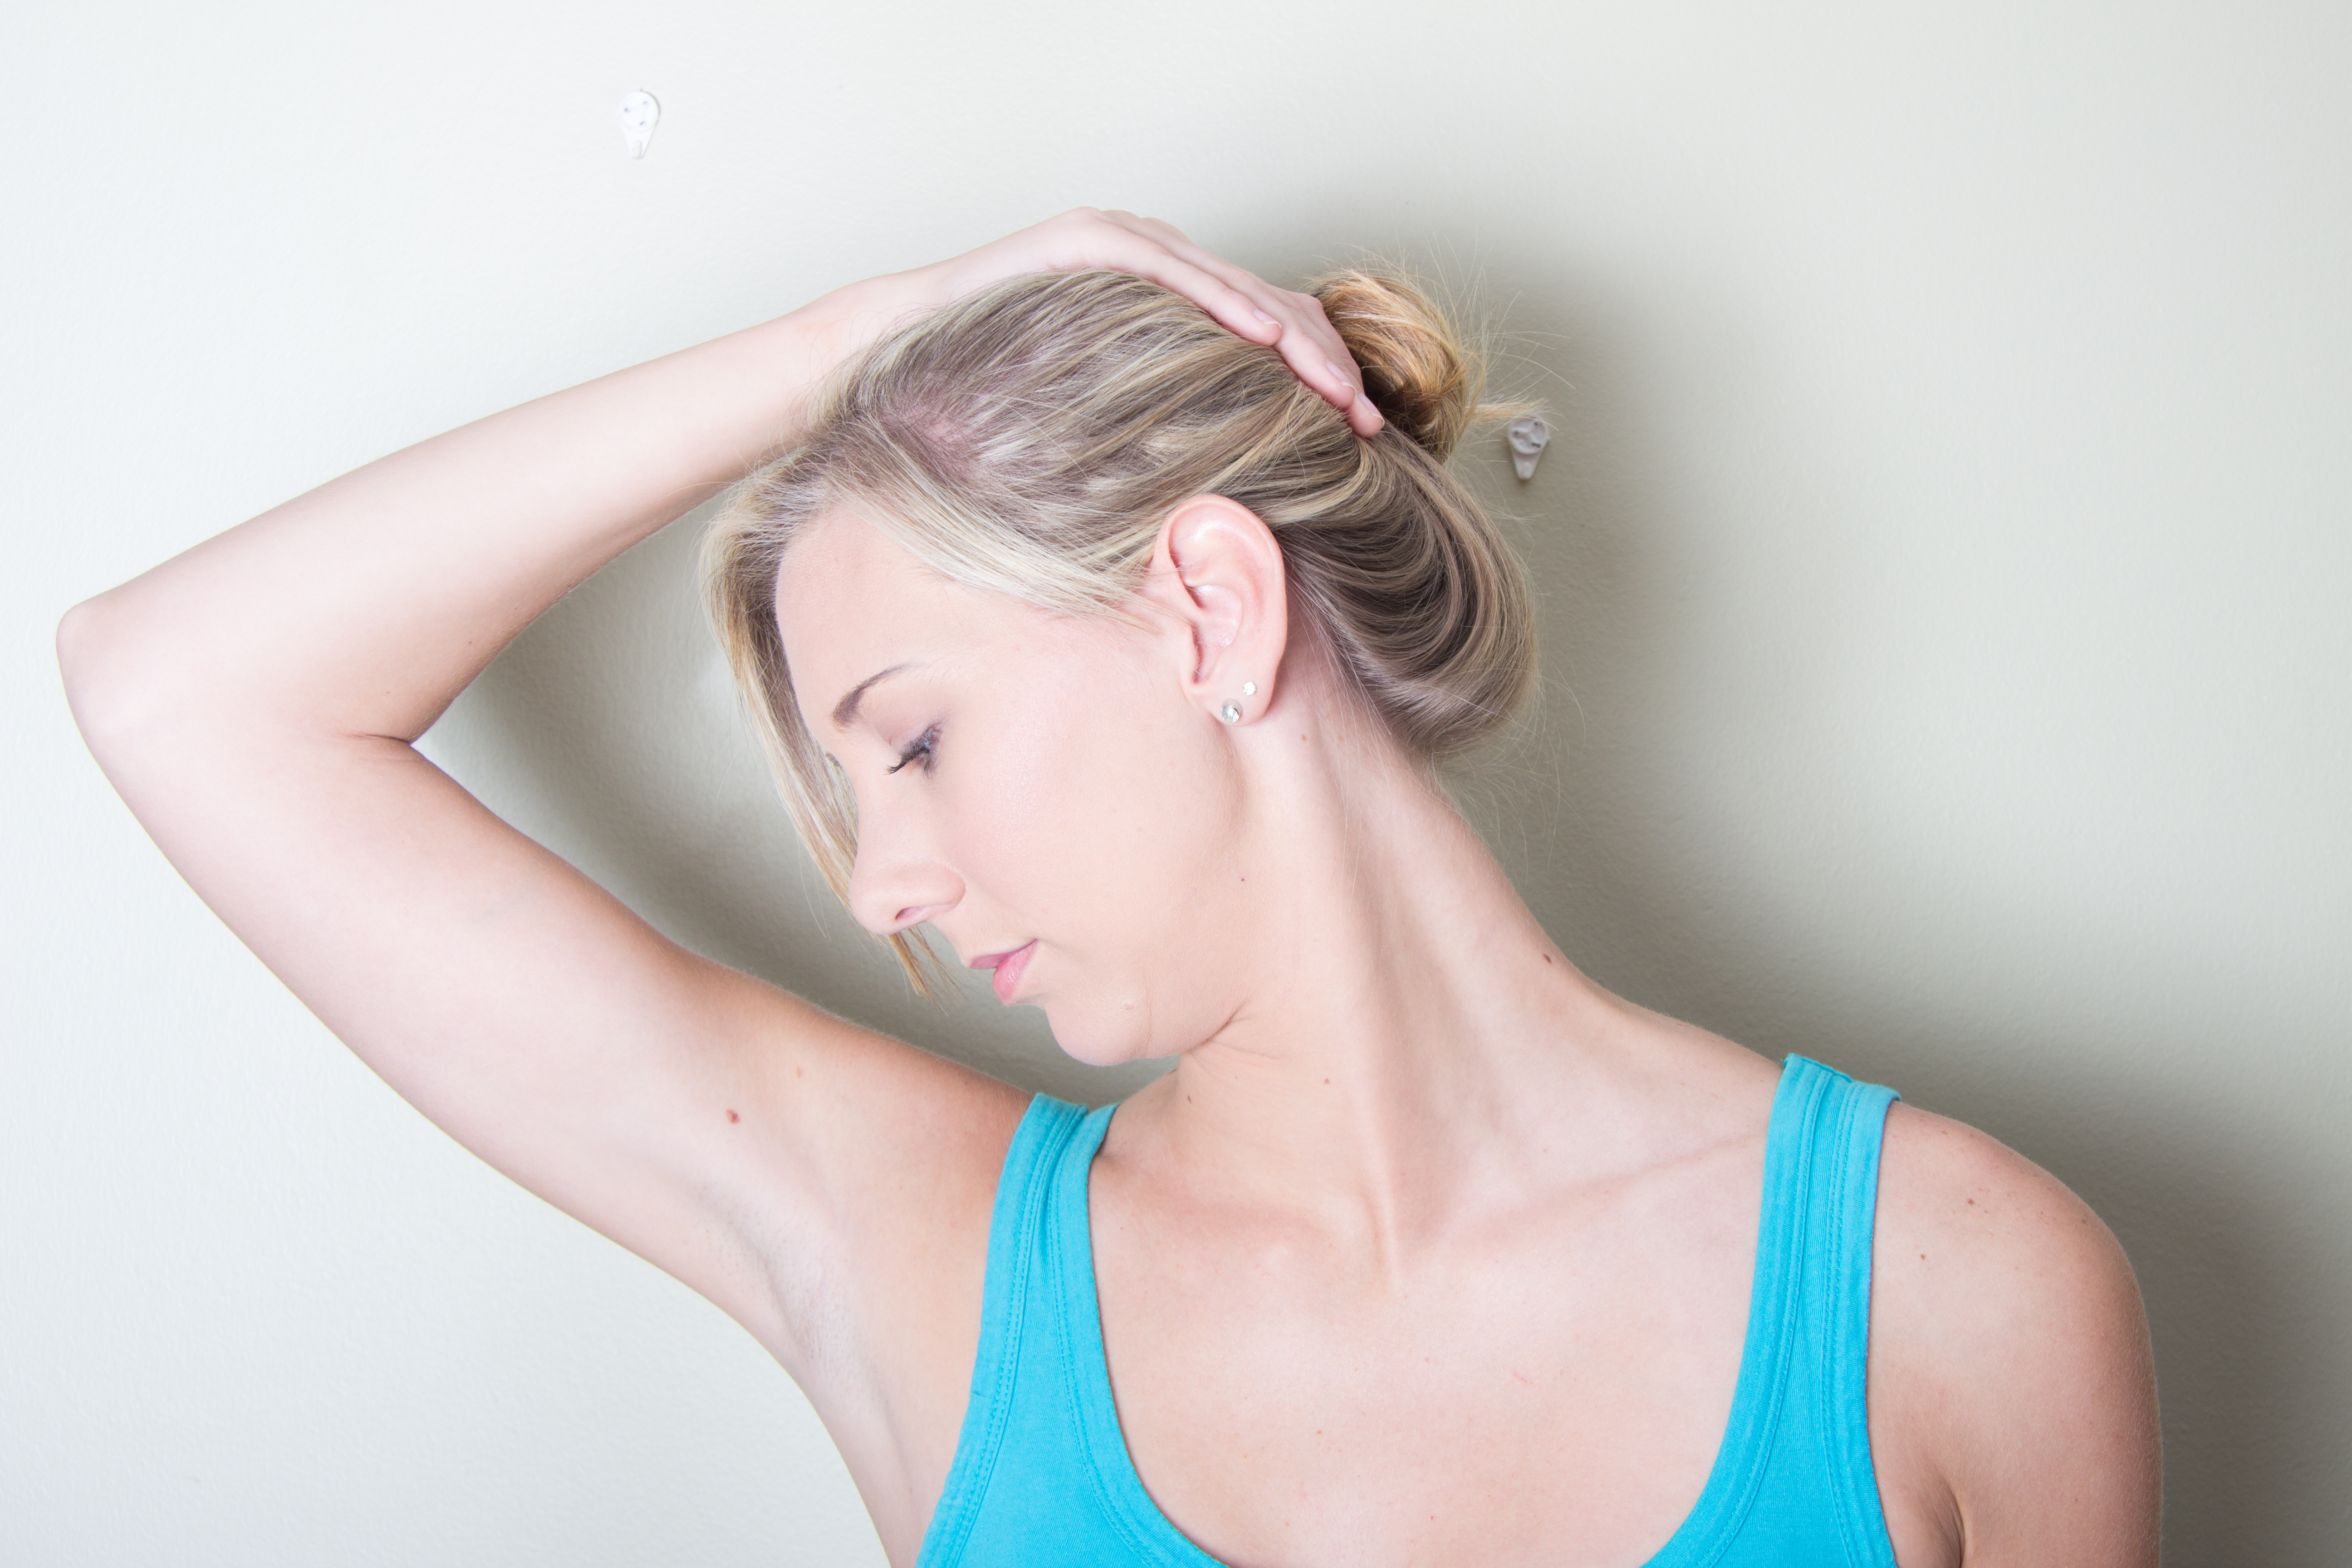 Shoulder and neck muscles stretch